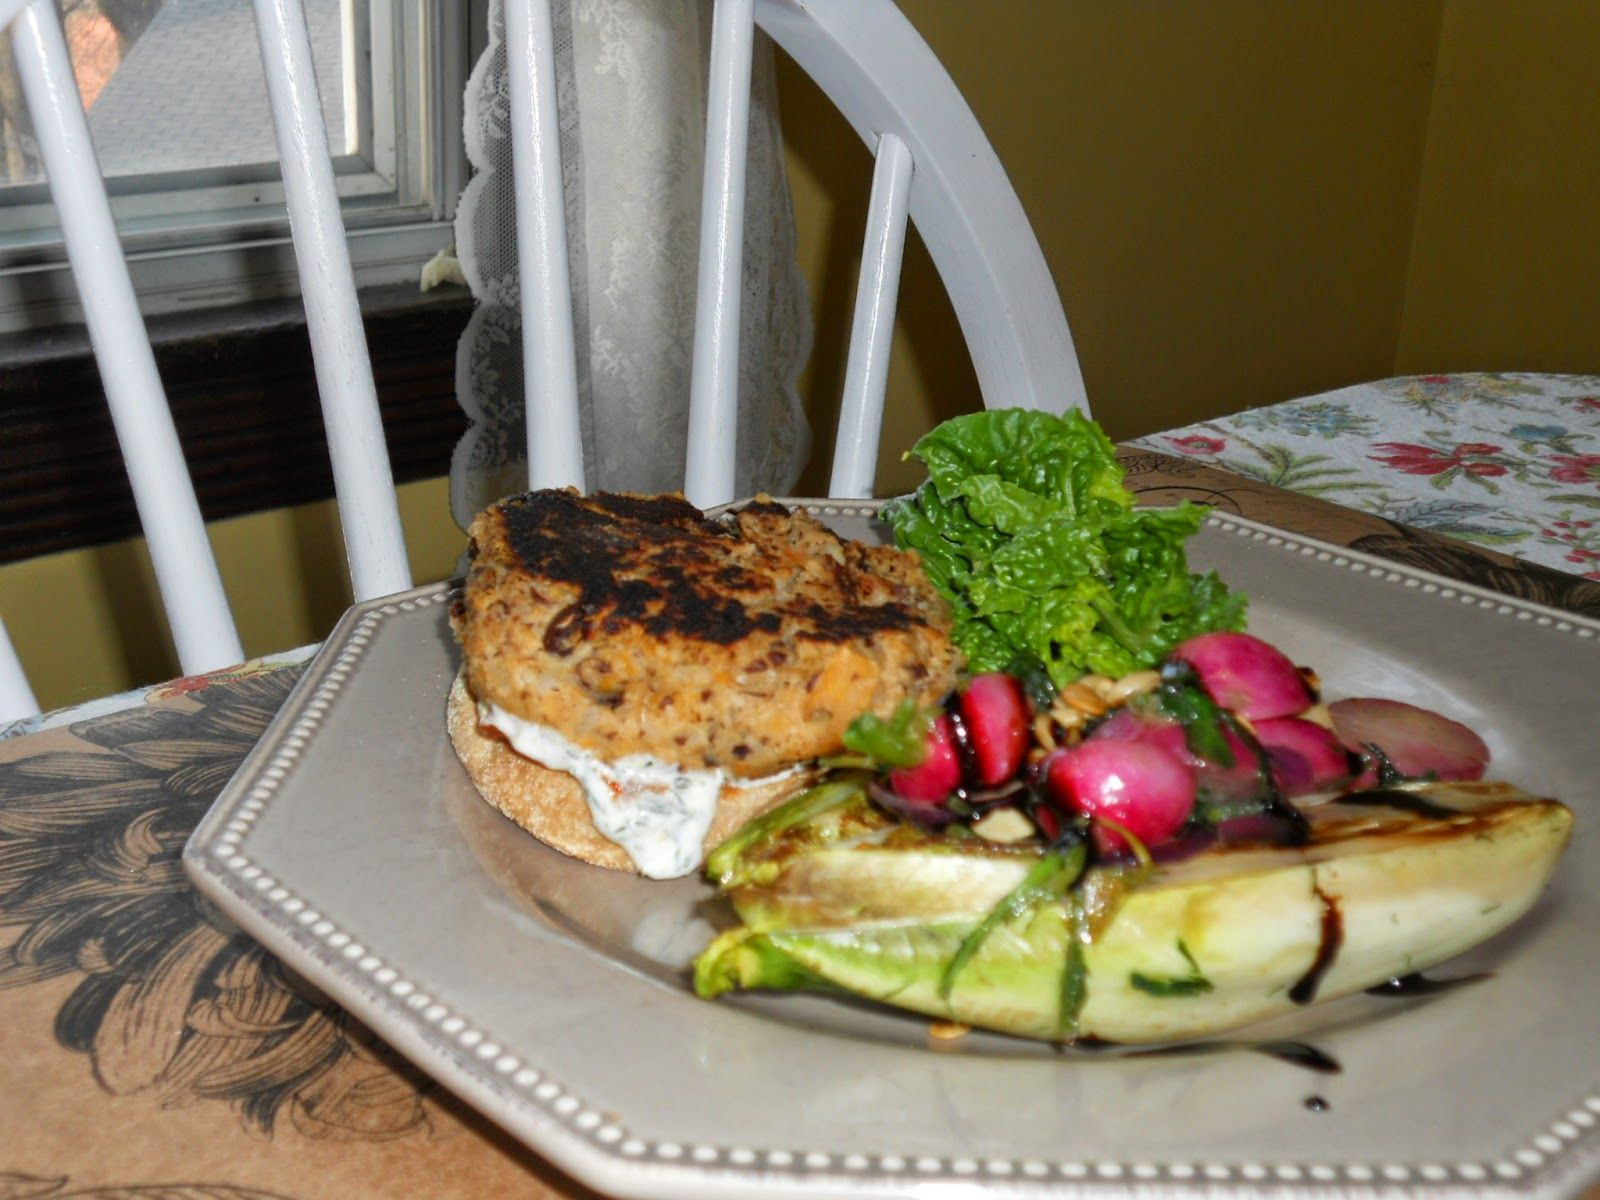 Lettuce Shoppe Food Spot: VEGGIE BURGERS ON PARADE WITH HOMEMADE KETCHUP AND...